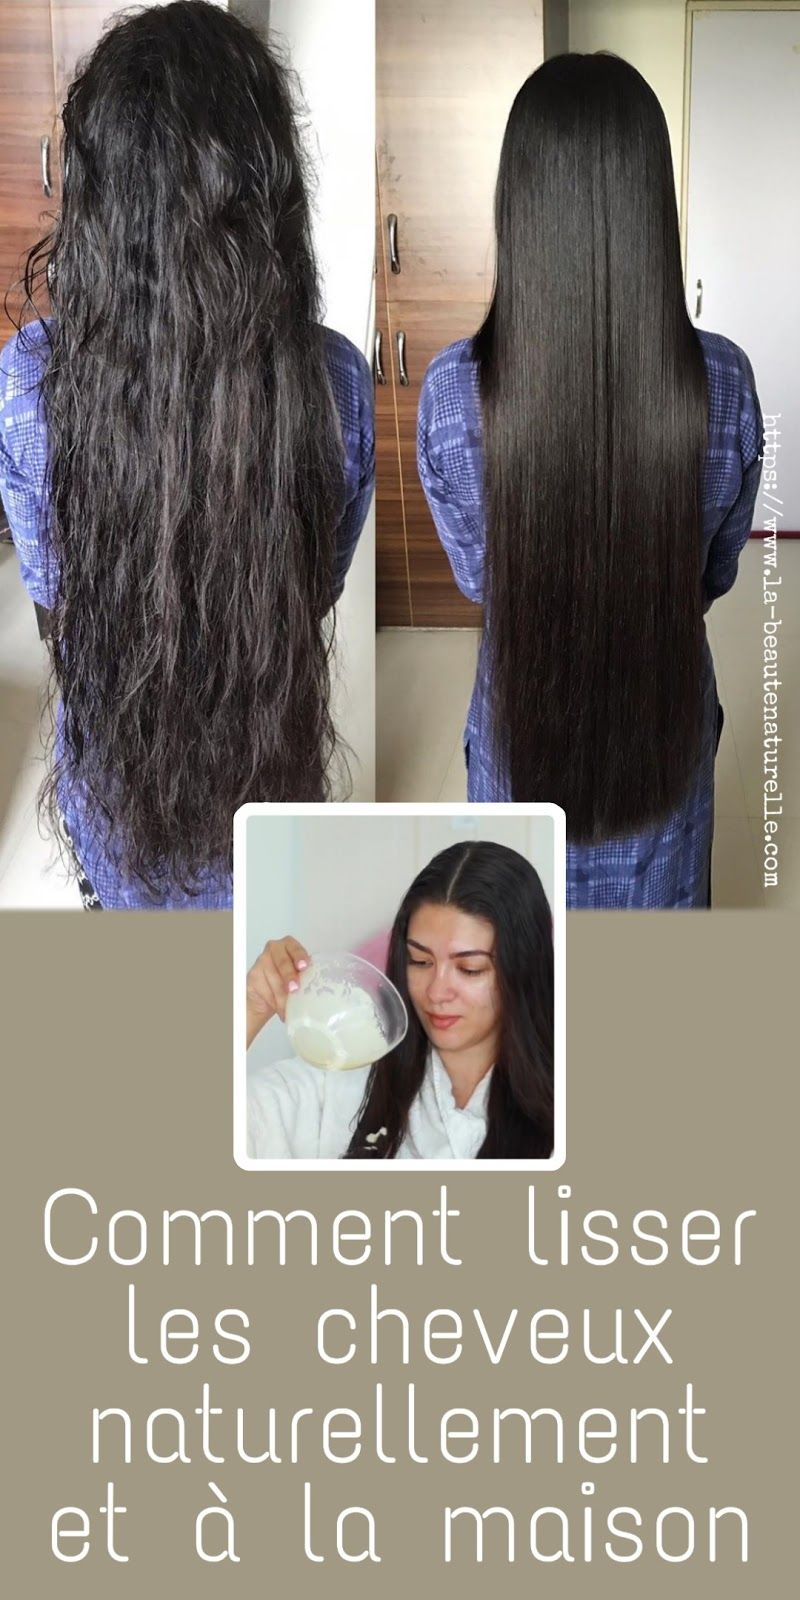 Voulez Vous Obtenir Des Cheveux Raidesnaturellement Avoir Des Cheveux Lisses Et Brillants Sans Avoir Besoin De Tr Hair Styles Natural Hair Styles Smooth Hair